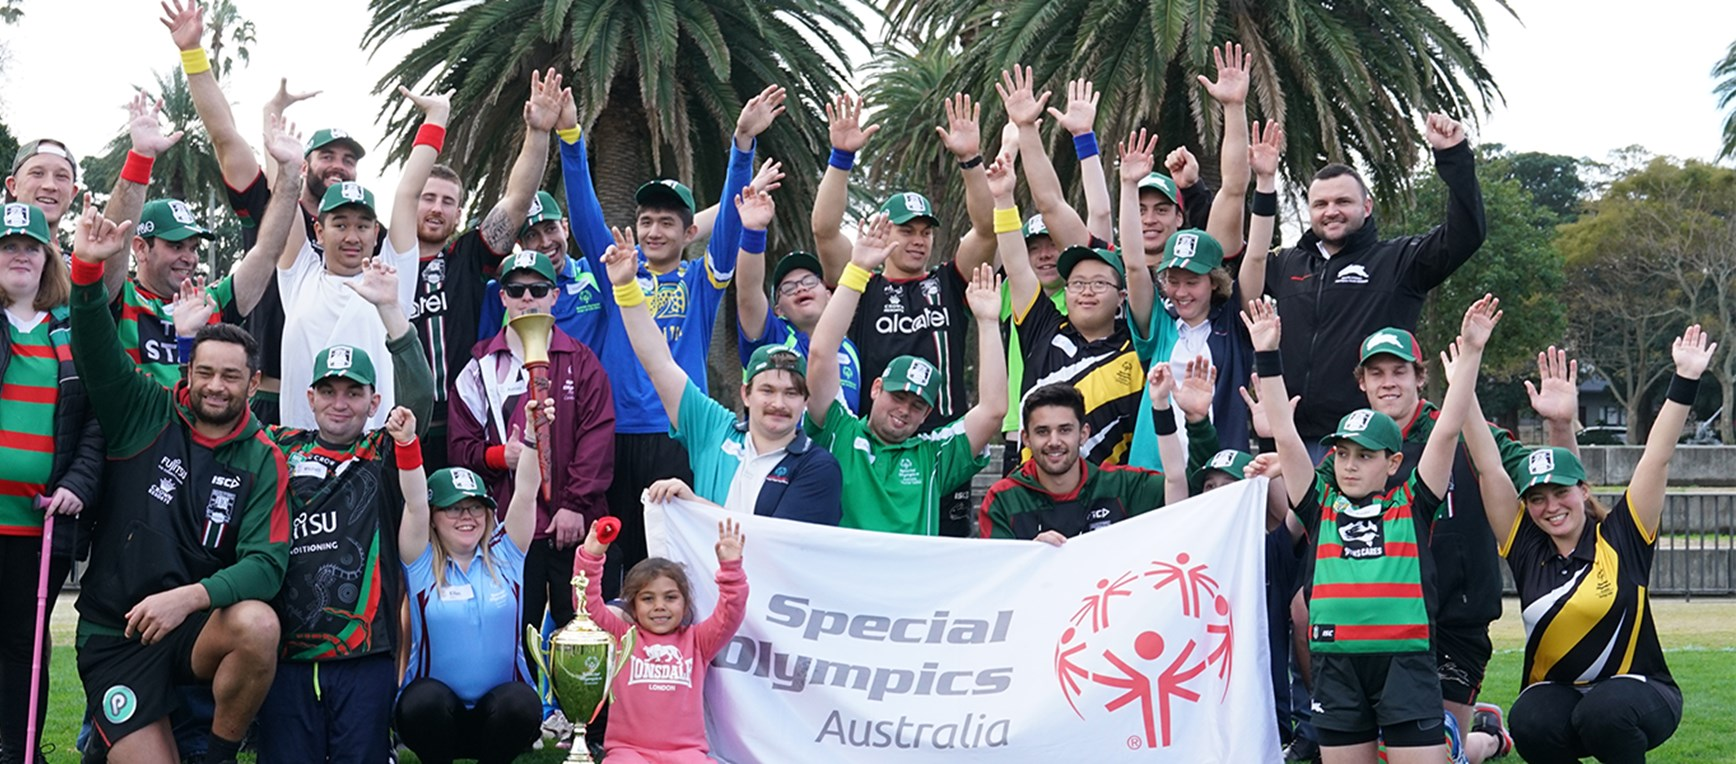 Gallery - Mini Special Olympics lights up Redfern Oval